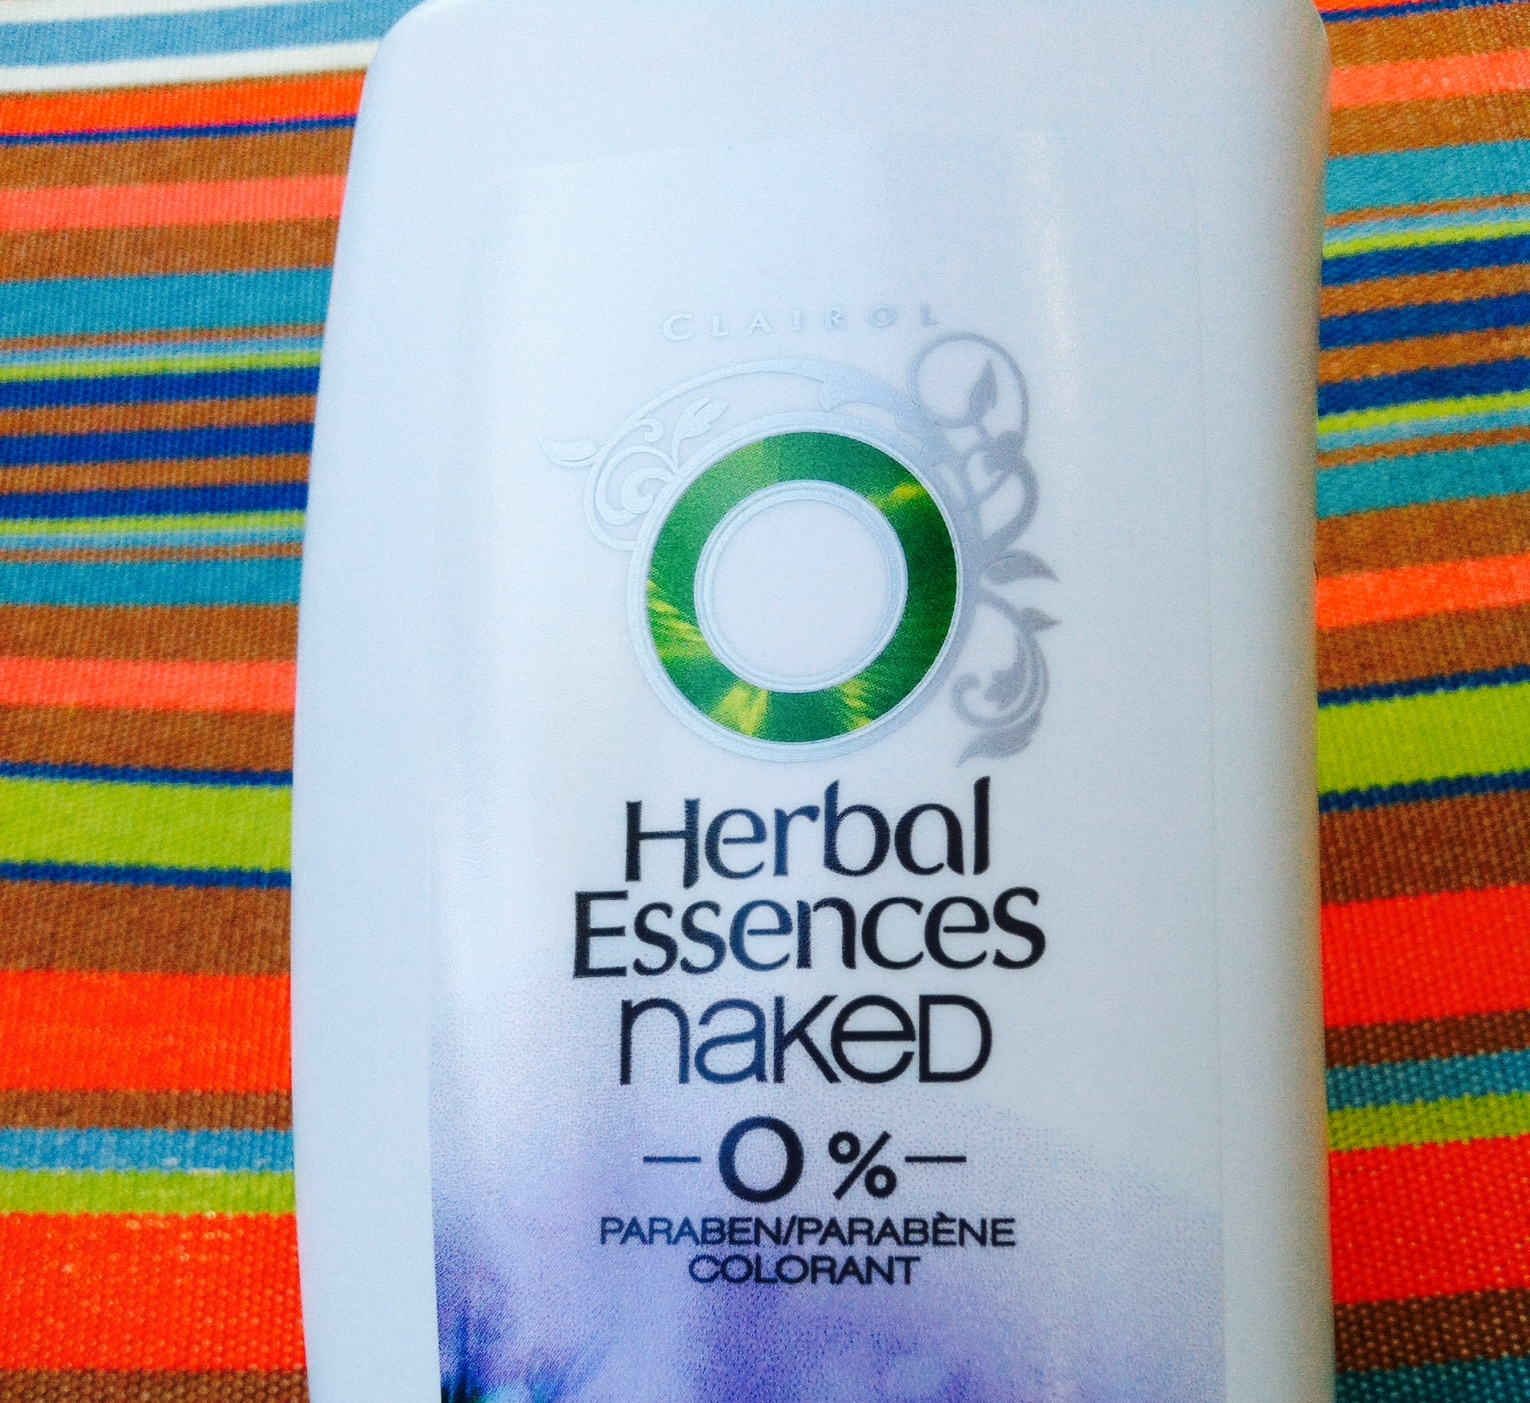 Yay Herbal Essences for making paraben-free shampoos and conditioners!